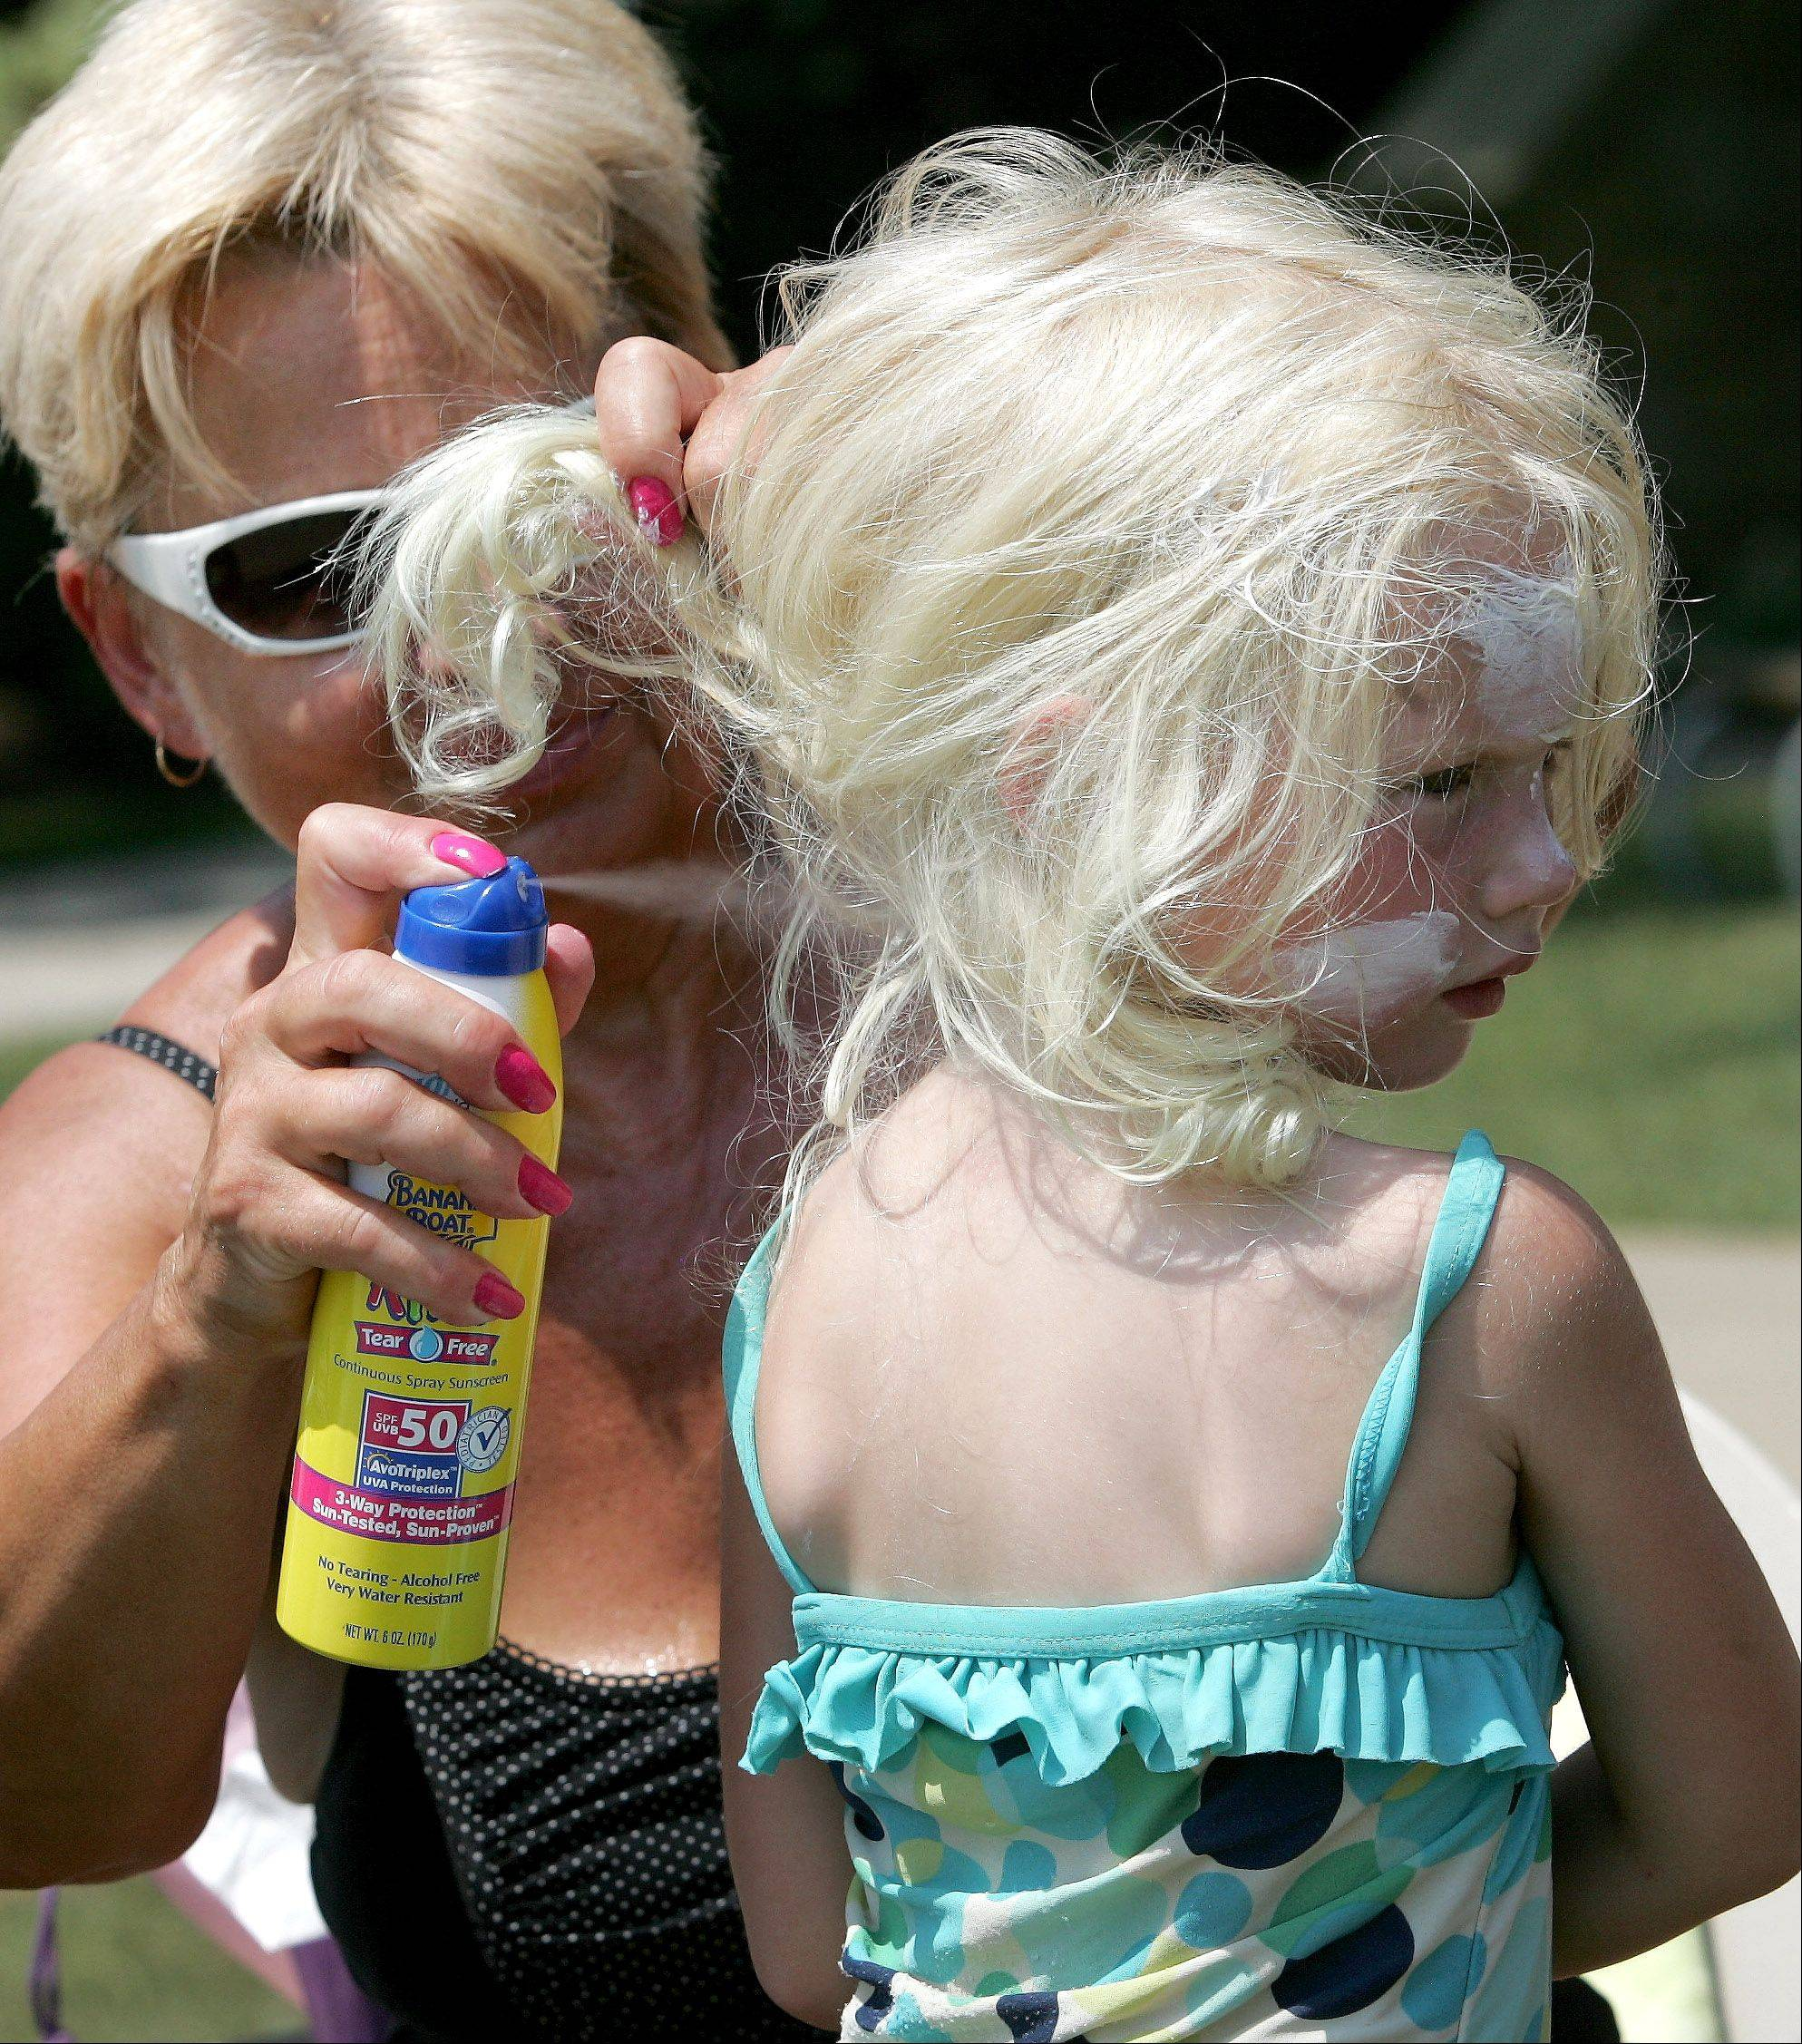 Hope Olin gives Addison Olin, 4, lots of sunscreen during an outing to Centennial Beach in Naperville.